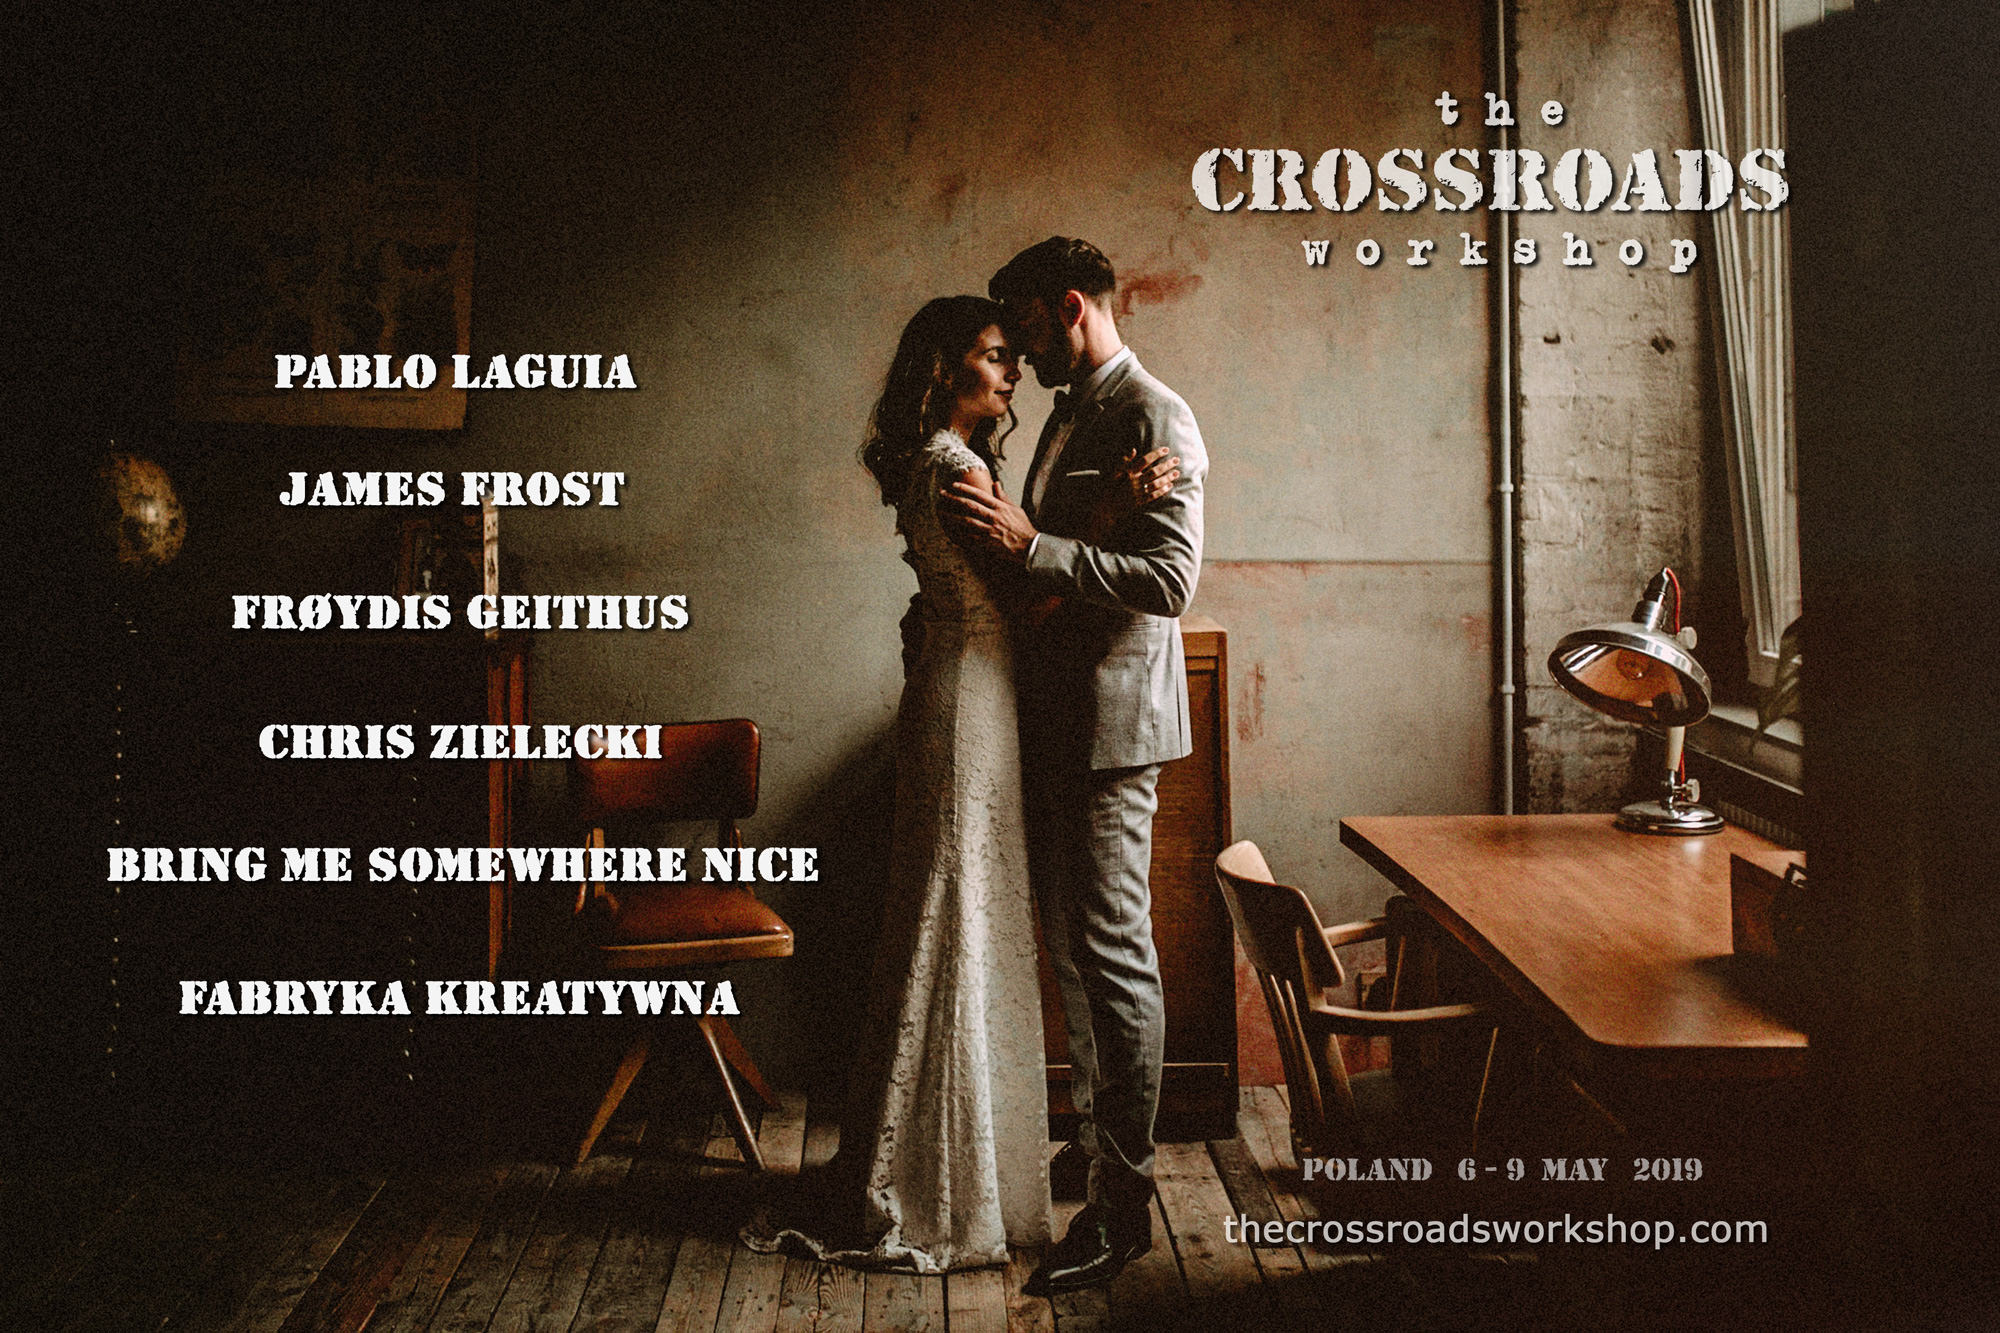 The Crossroads 2019 wedding photography workshop Poland